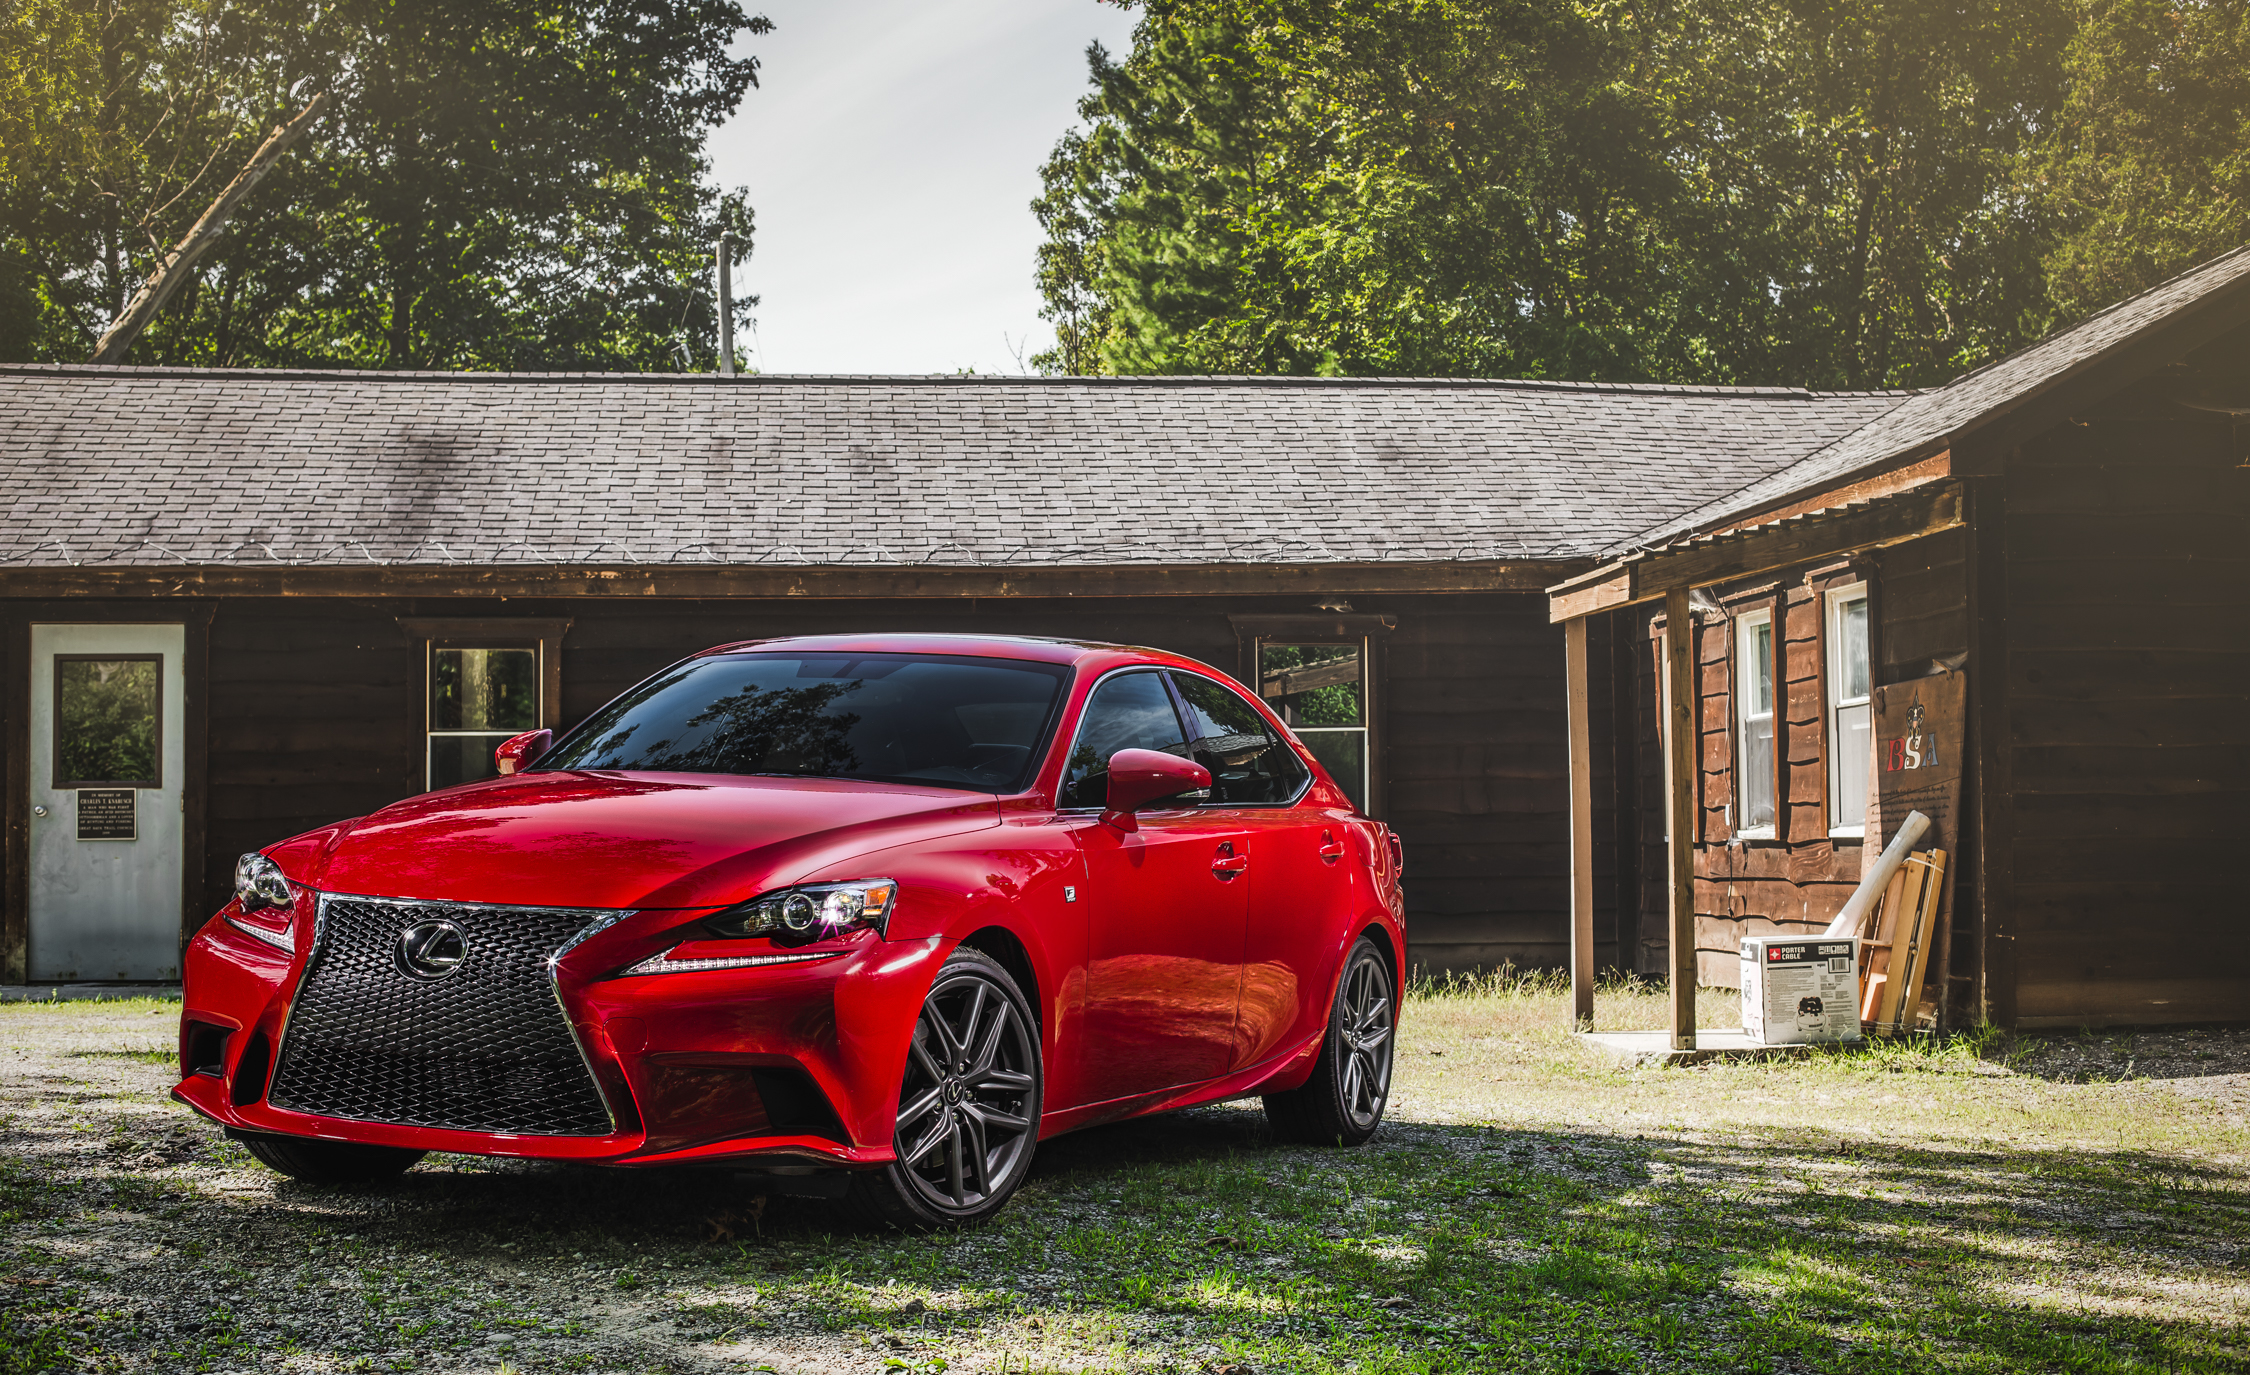 2016 Lexus IS200t F Sport